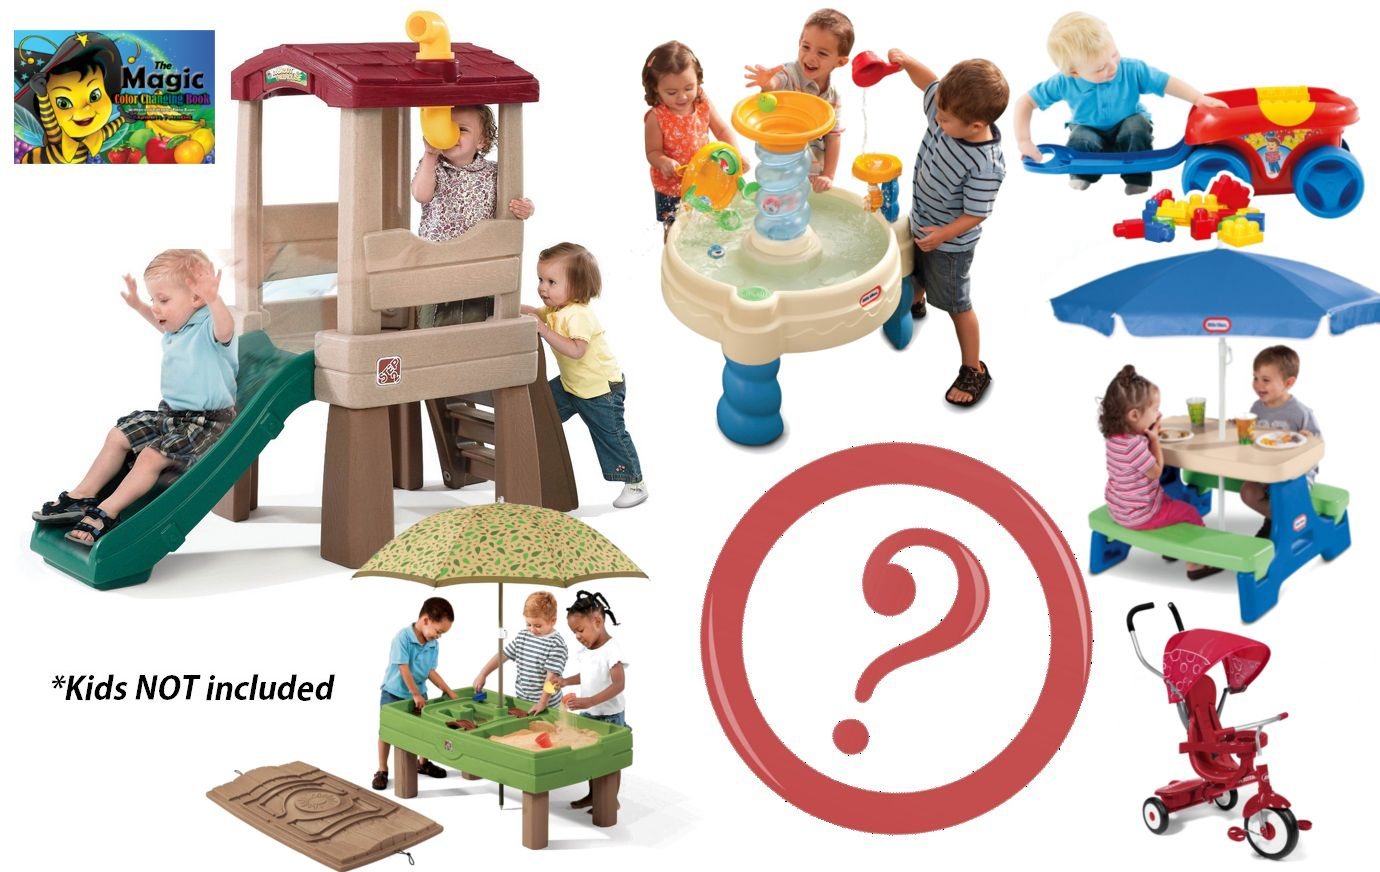 Toddler contests and giveaways